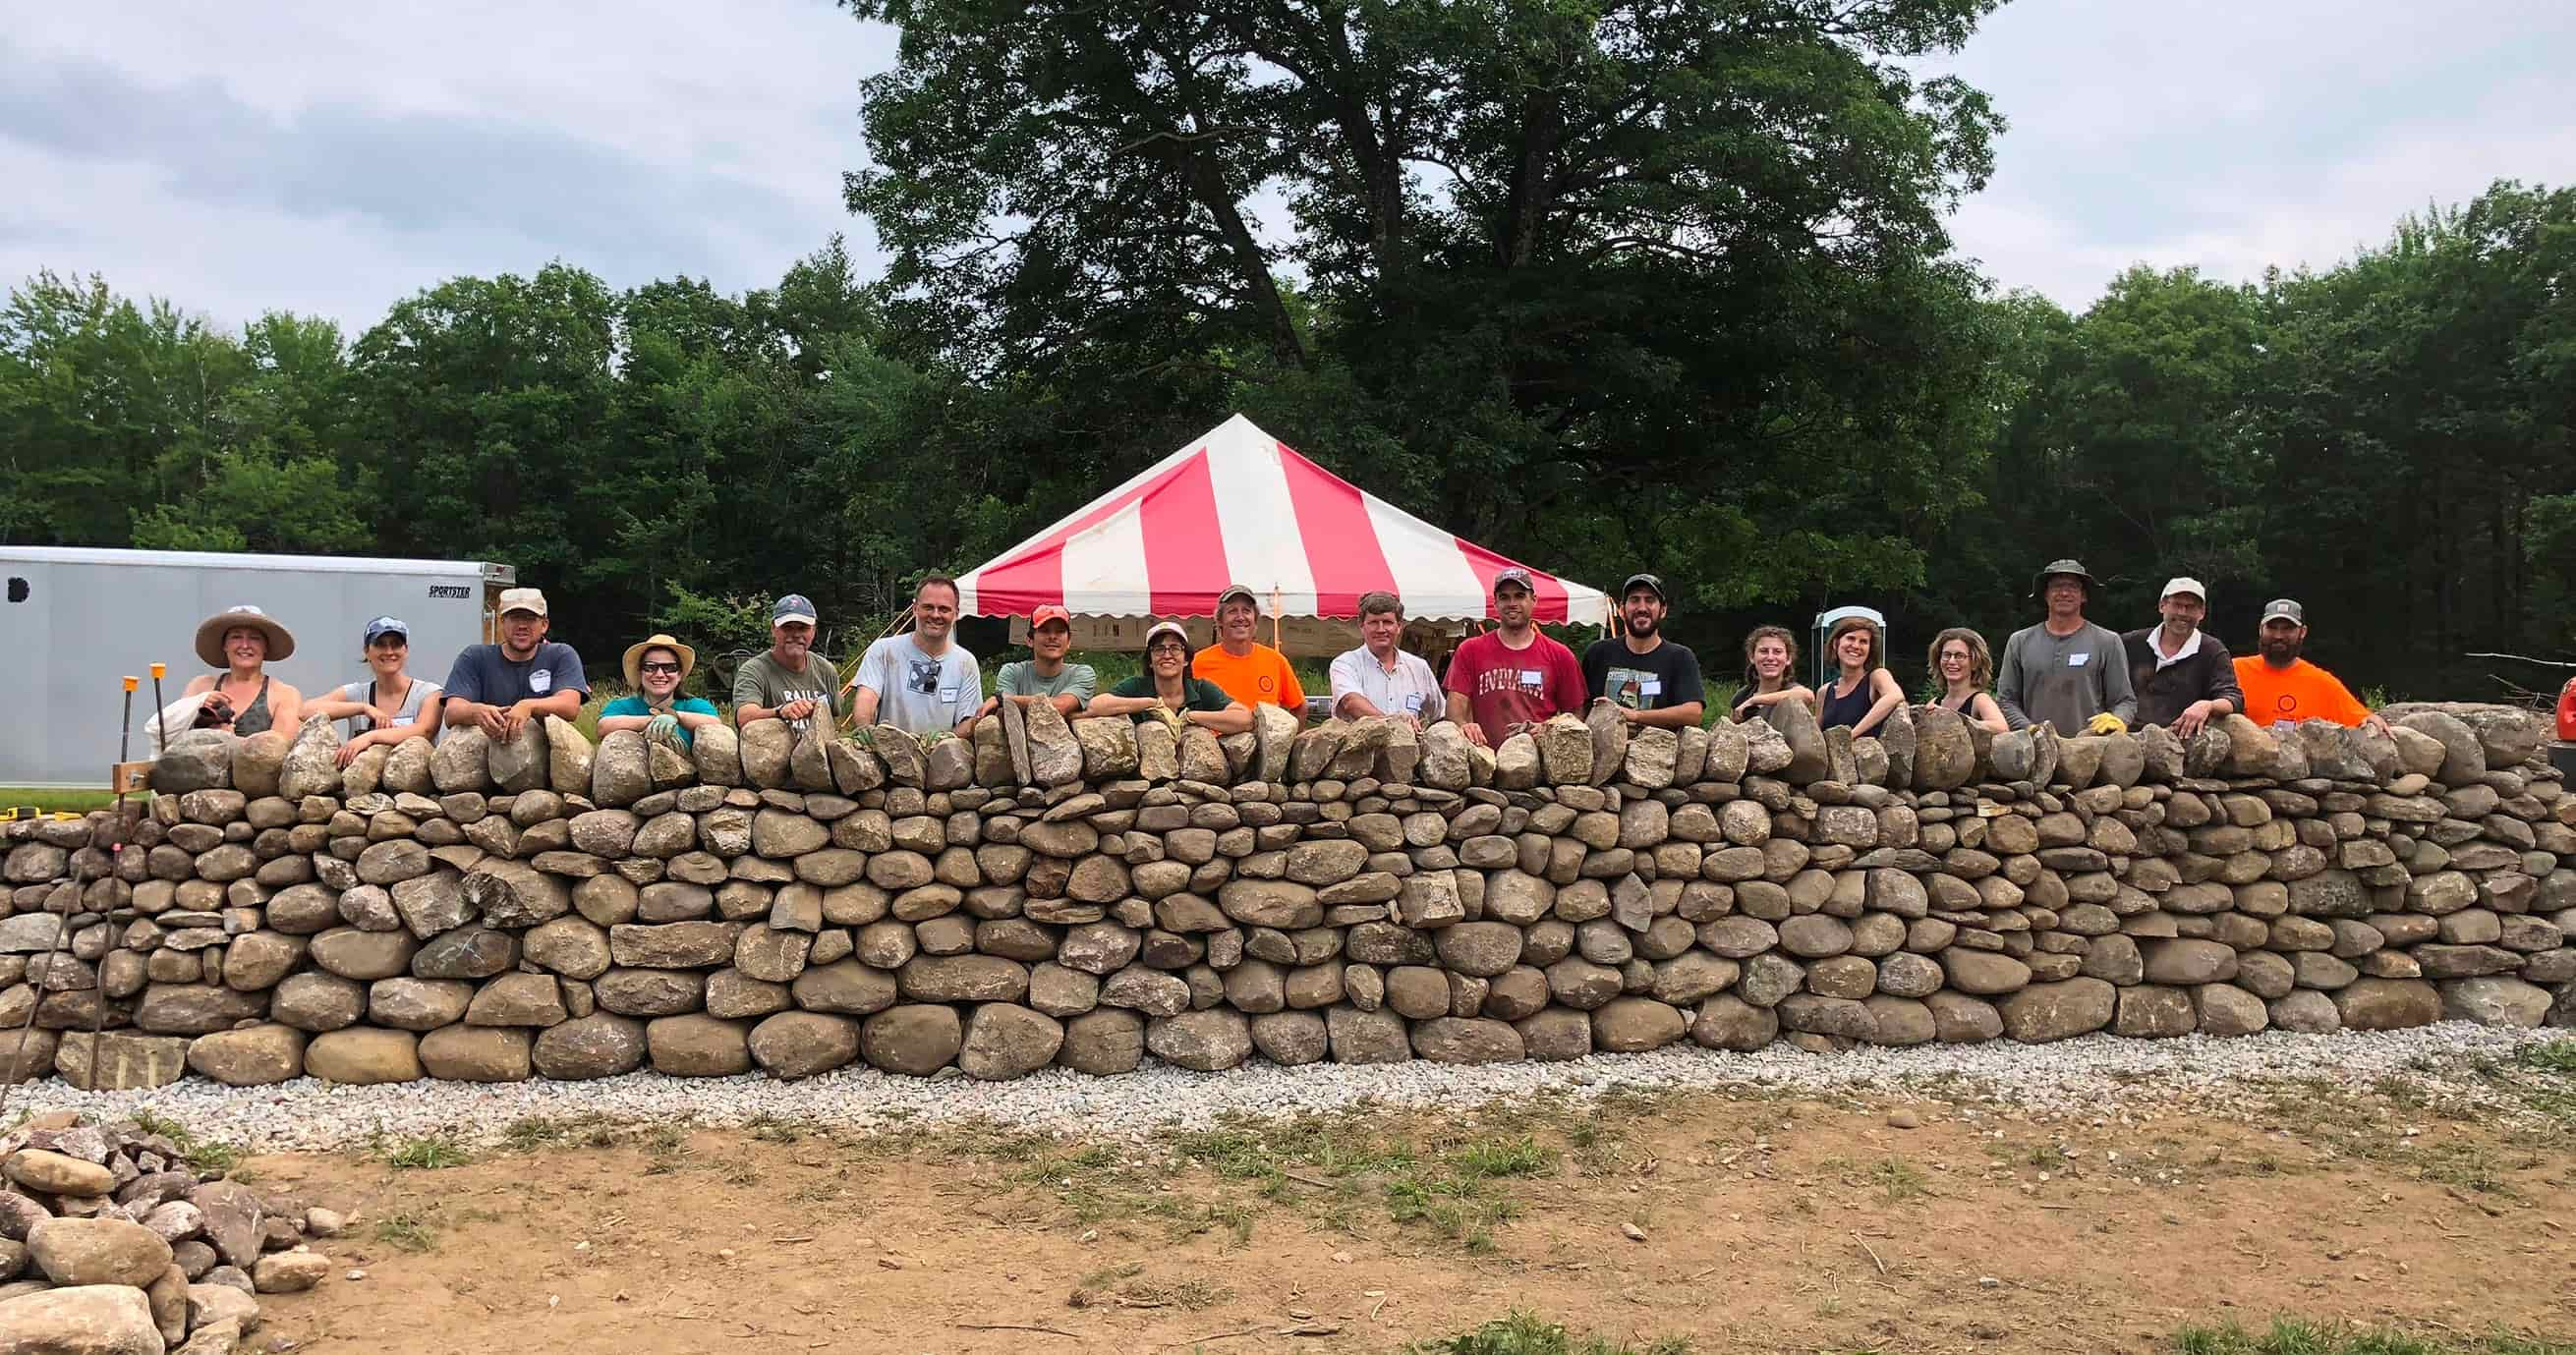 July 2018 Introductory Walling Group